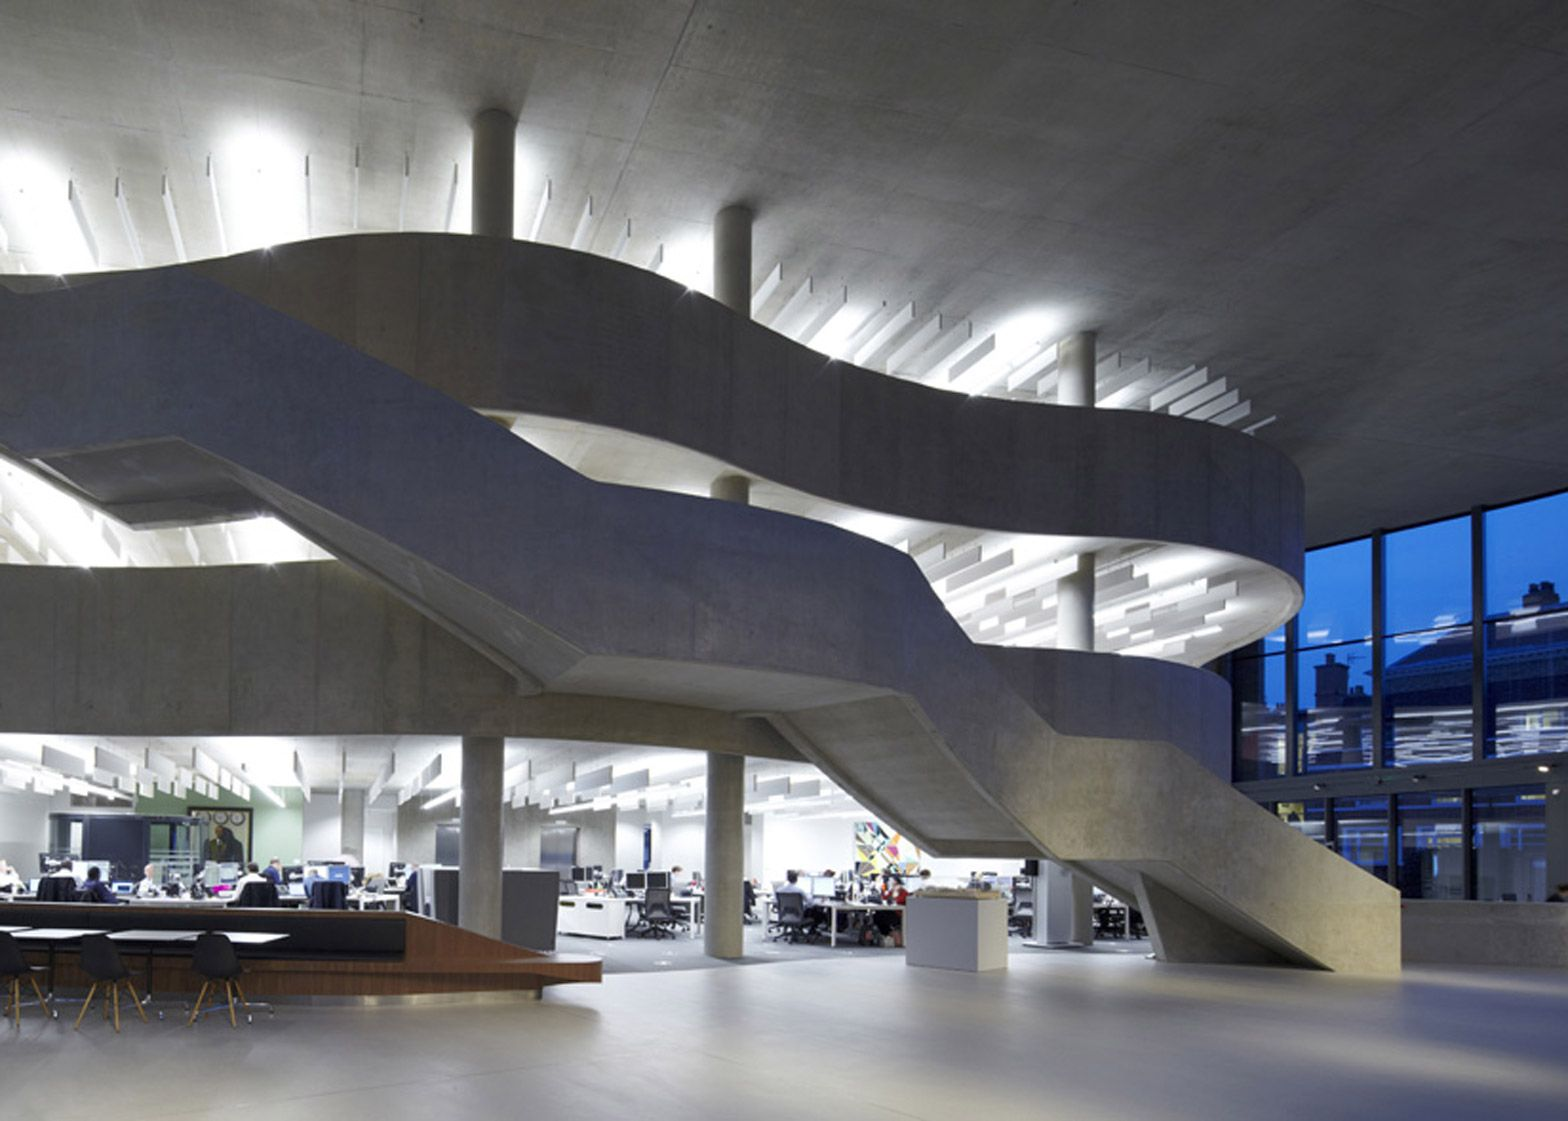 Hiscox office building by Make Architects features grand